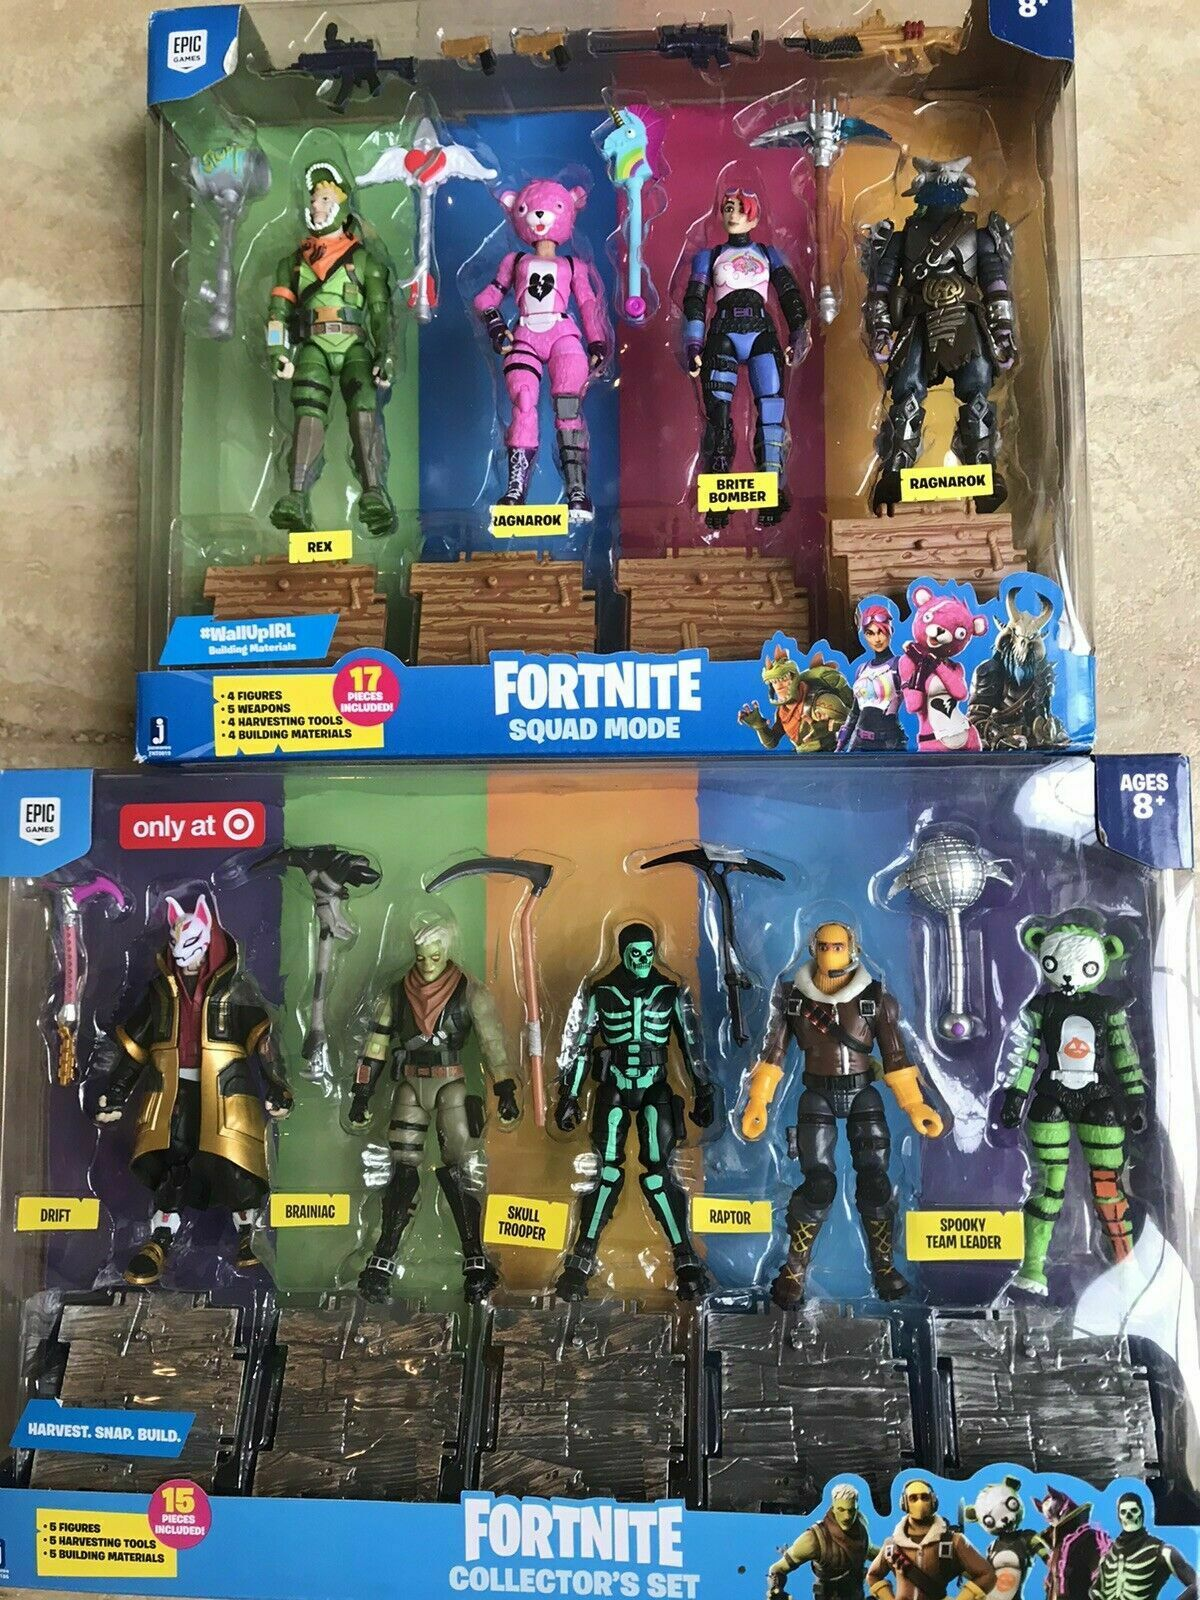 Fortnite Collector's Set Target Exclusive Action Figure 5-pack